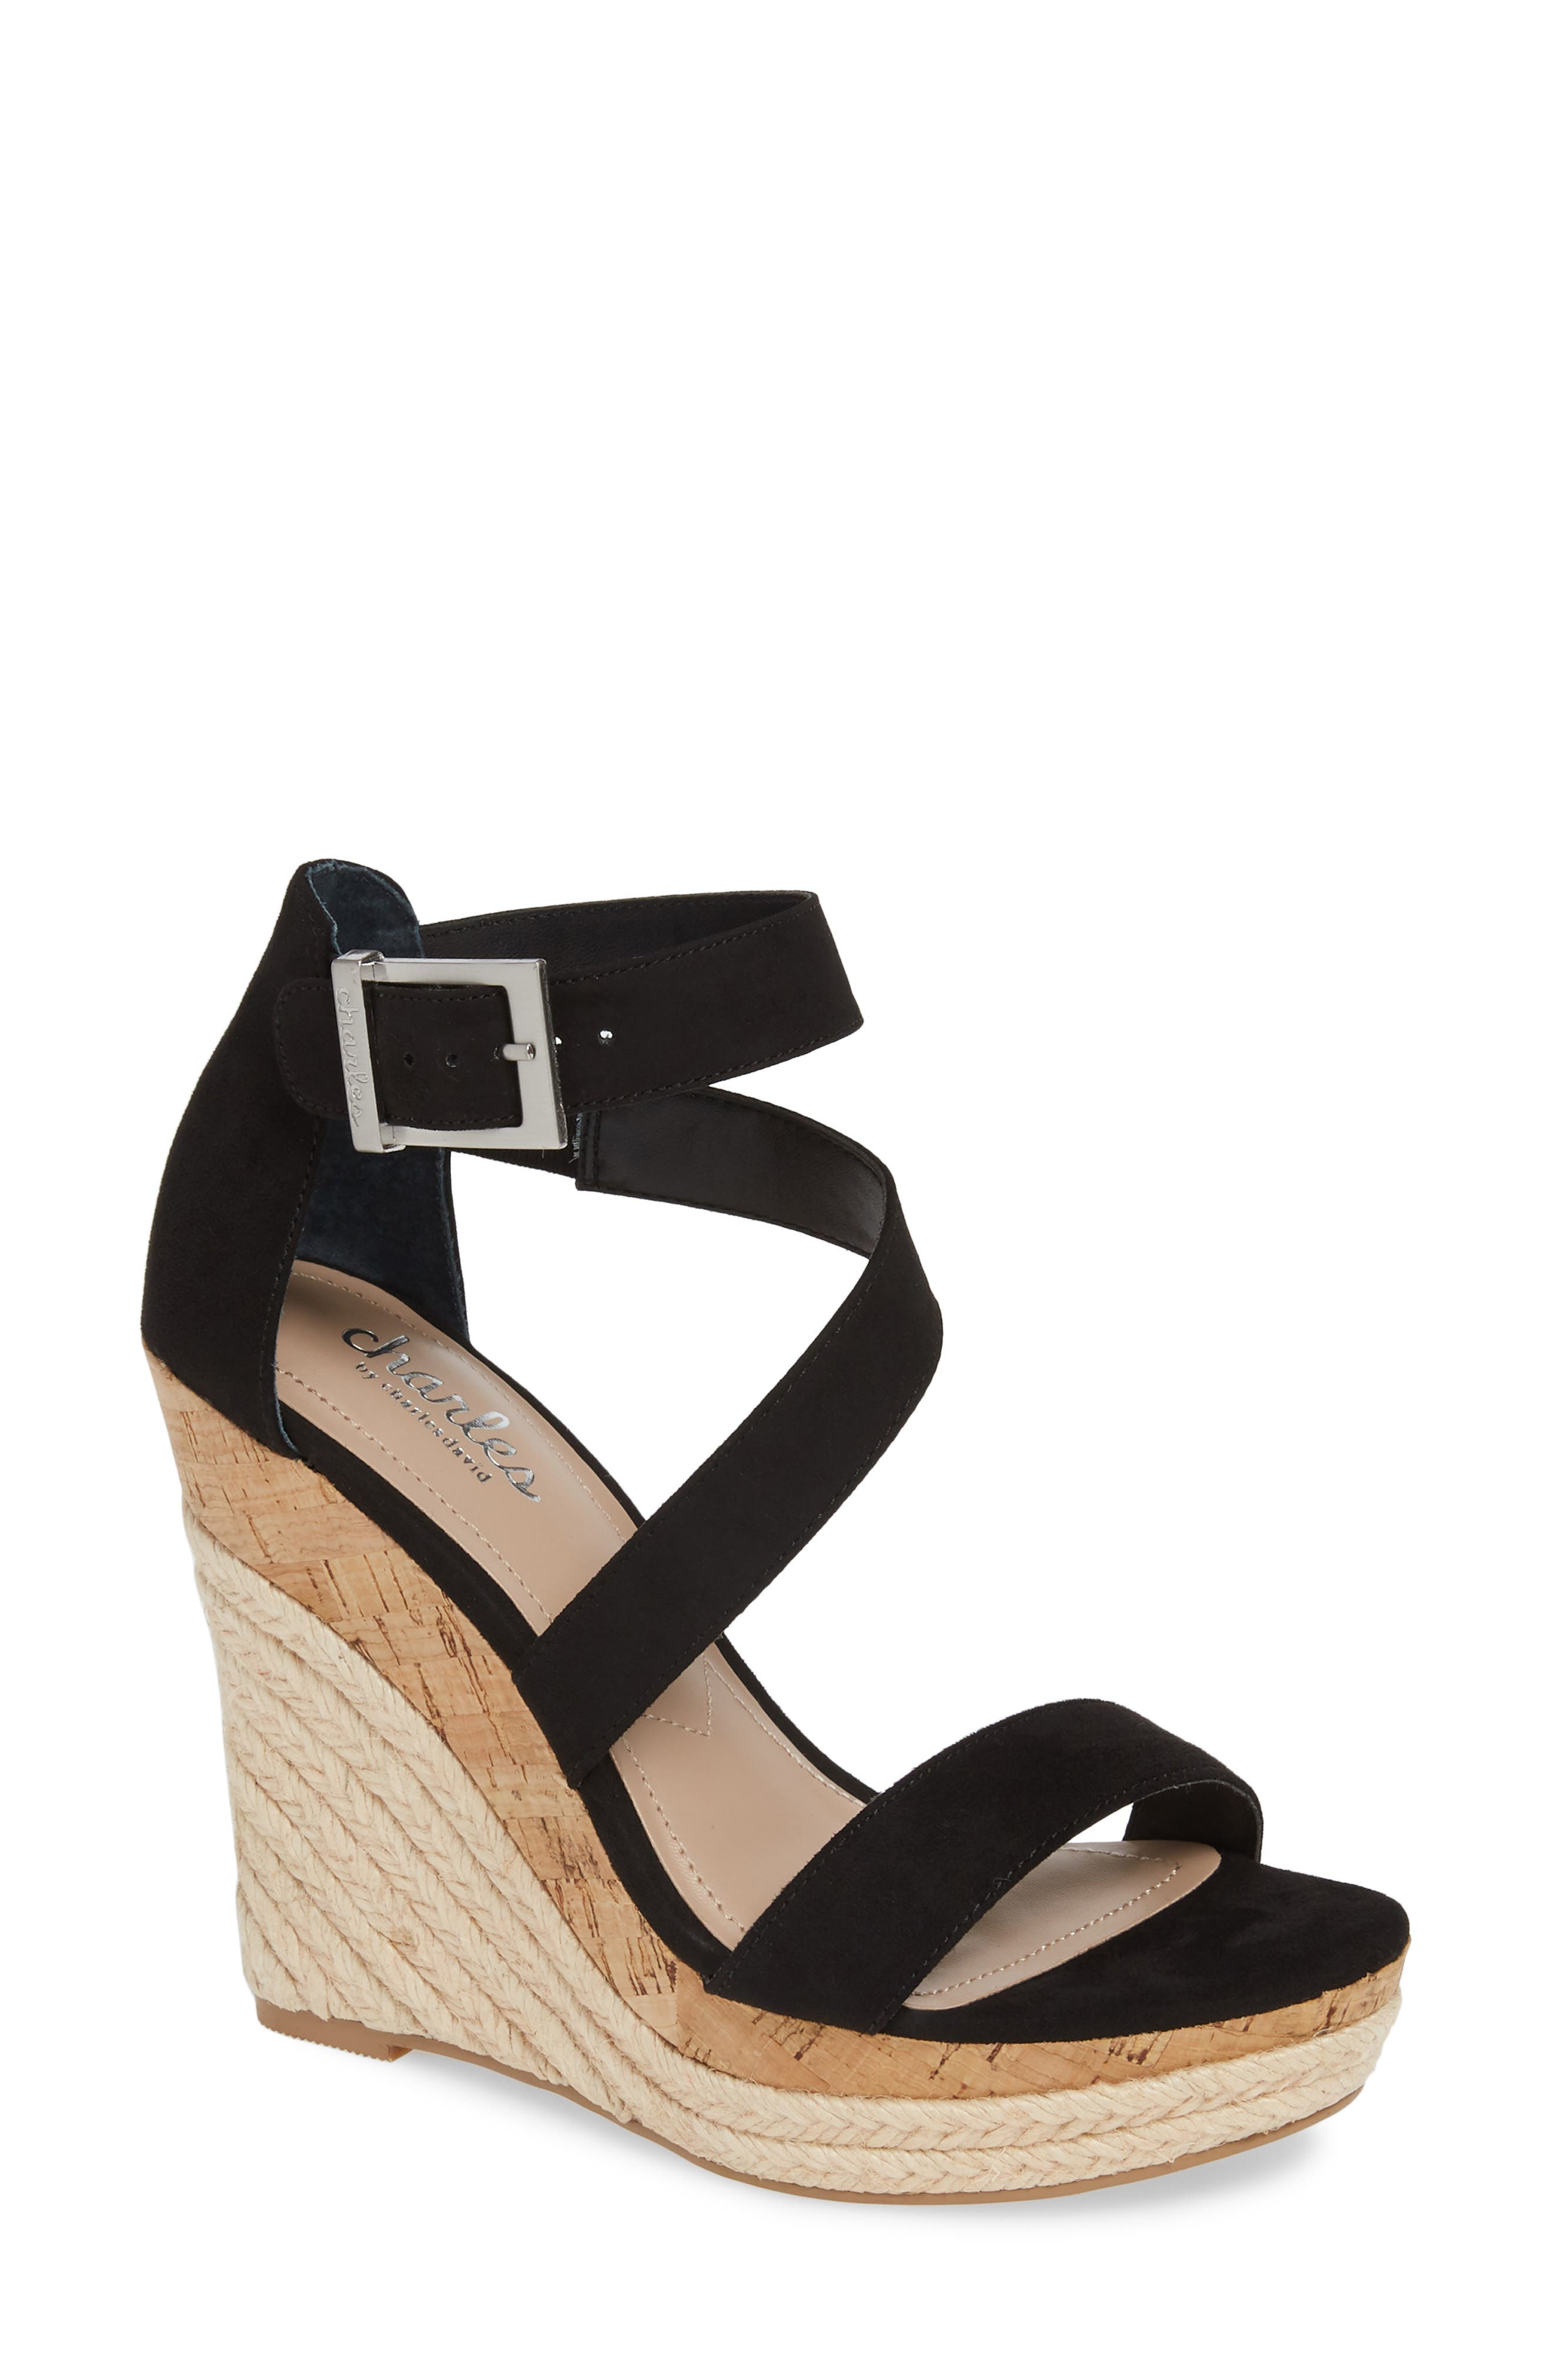 CHARLES BY CHARLES DAVID Adrielle Asymmetrical Platform Wedge Sandal, Main, color, BLACK FABRIC